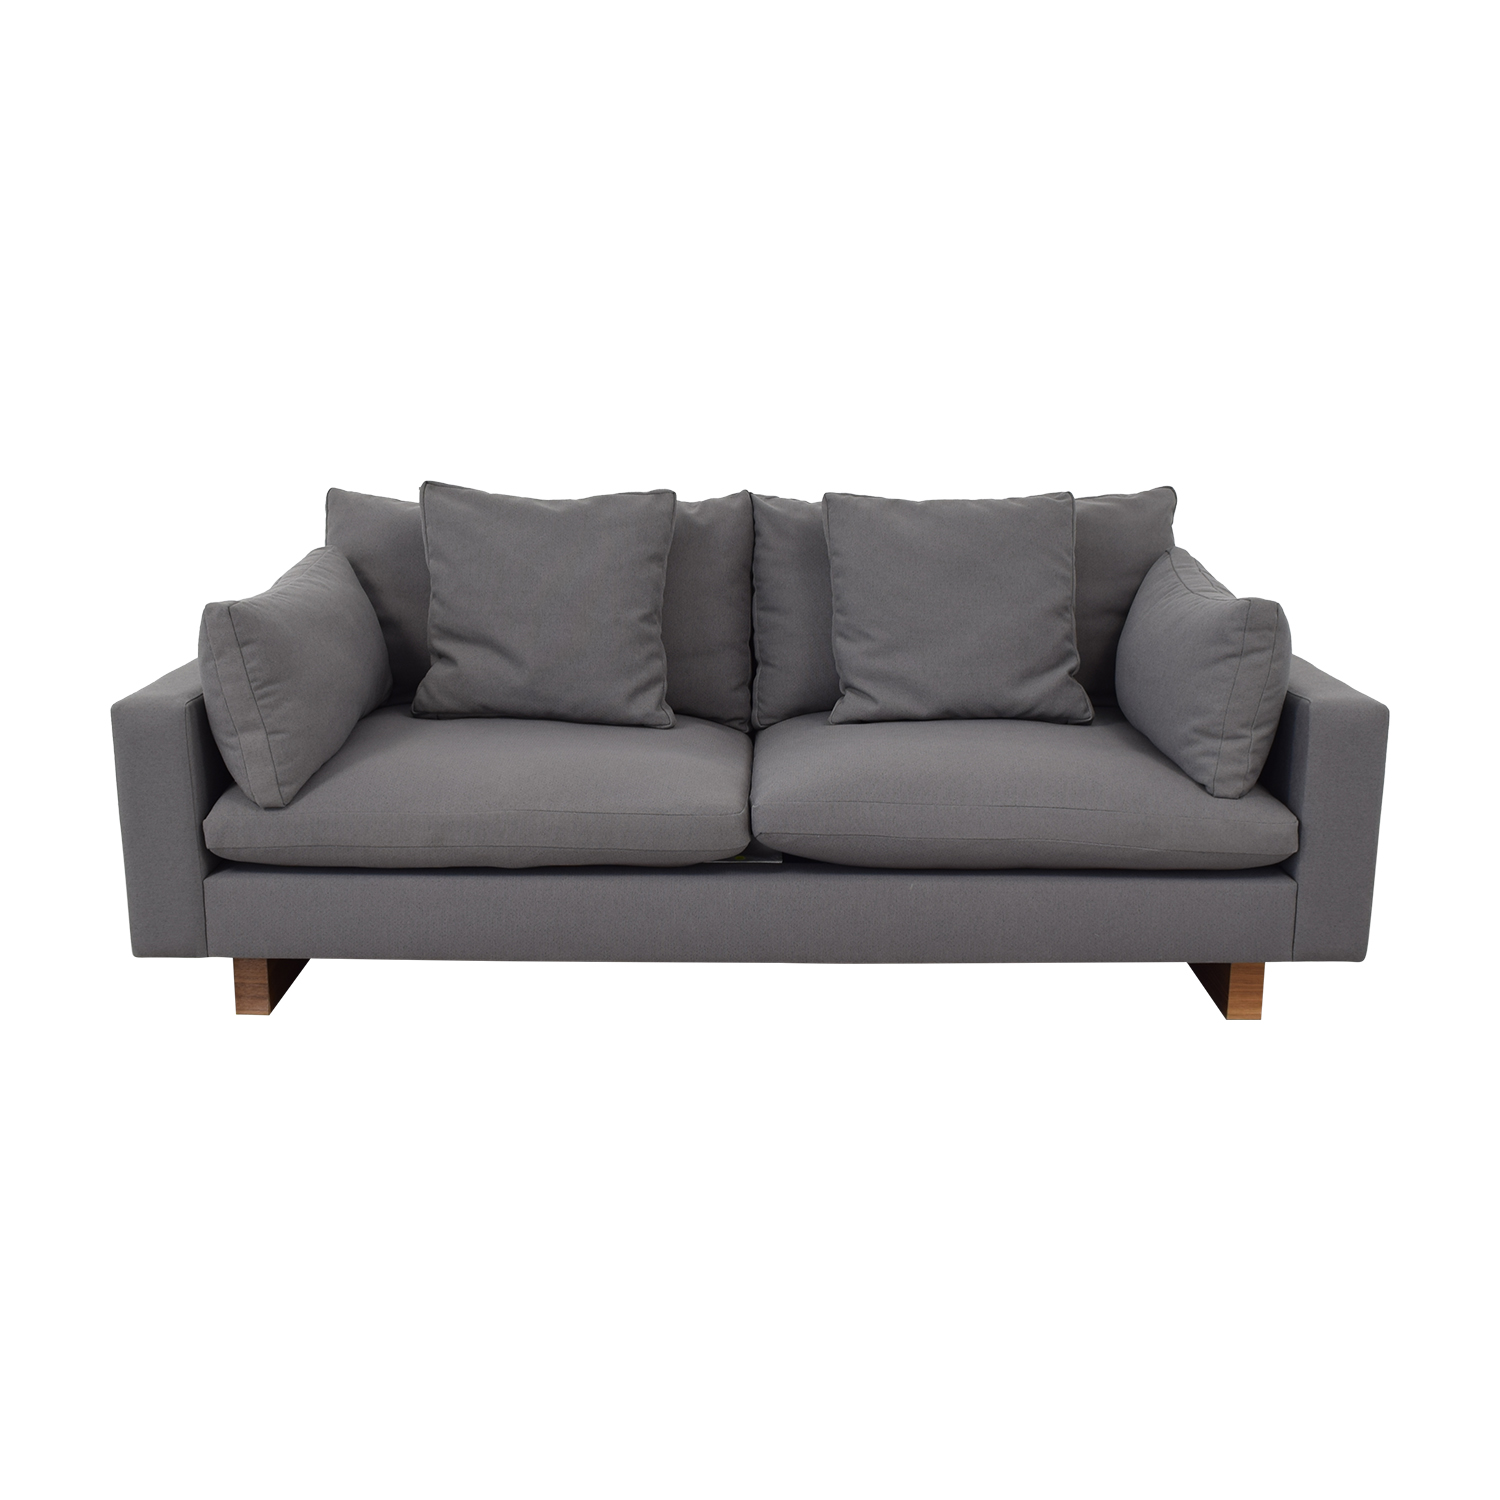 "shop West Elm West Elm Harmony 82"" Sofa Evo Weave Pewter online"